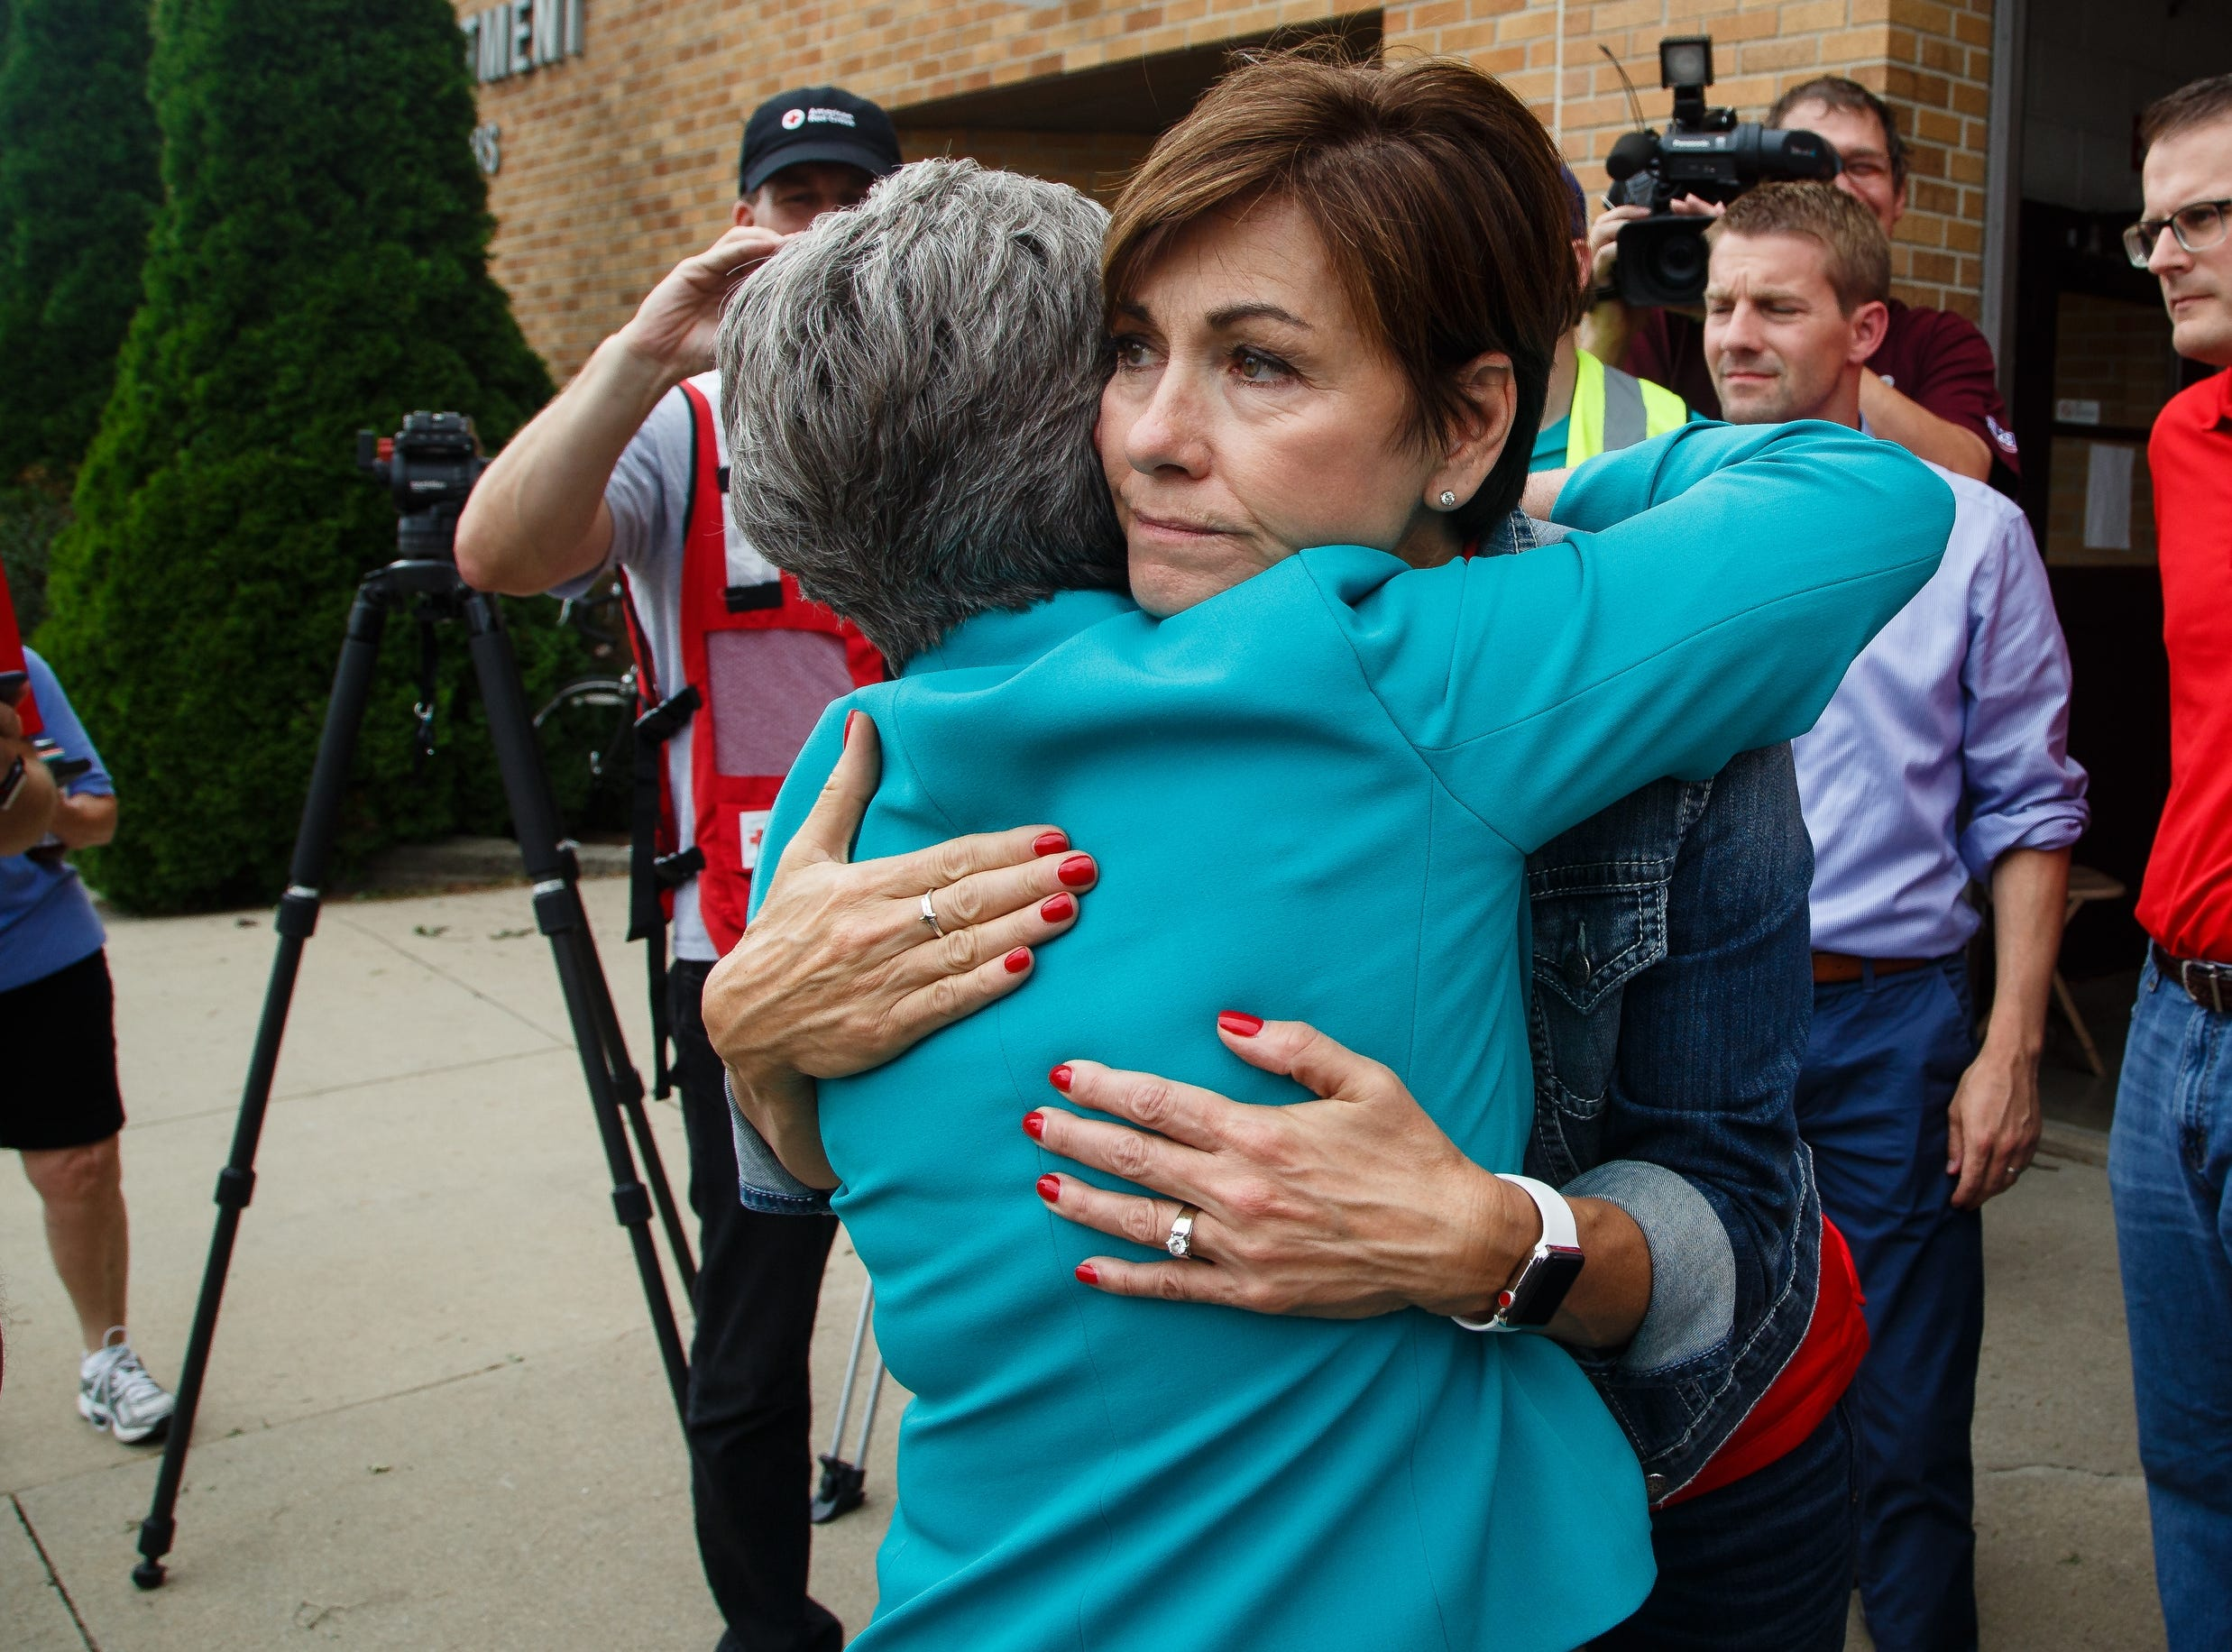 Iowa Governor Kim Reynolds, right, hugs Sen. Joni Ernst as she arrives to tour the damage in Marshalltown on Friday, July 20, 2018. Yesterday, tornadoes ripped through central Iowa causing major damage but only minor injuries have been reported so far.